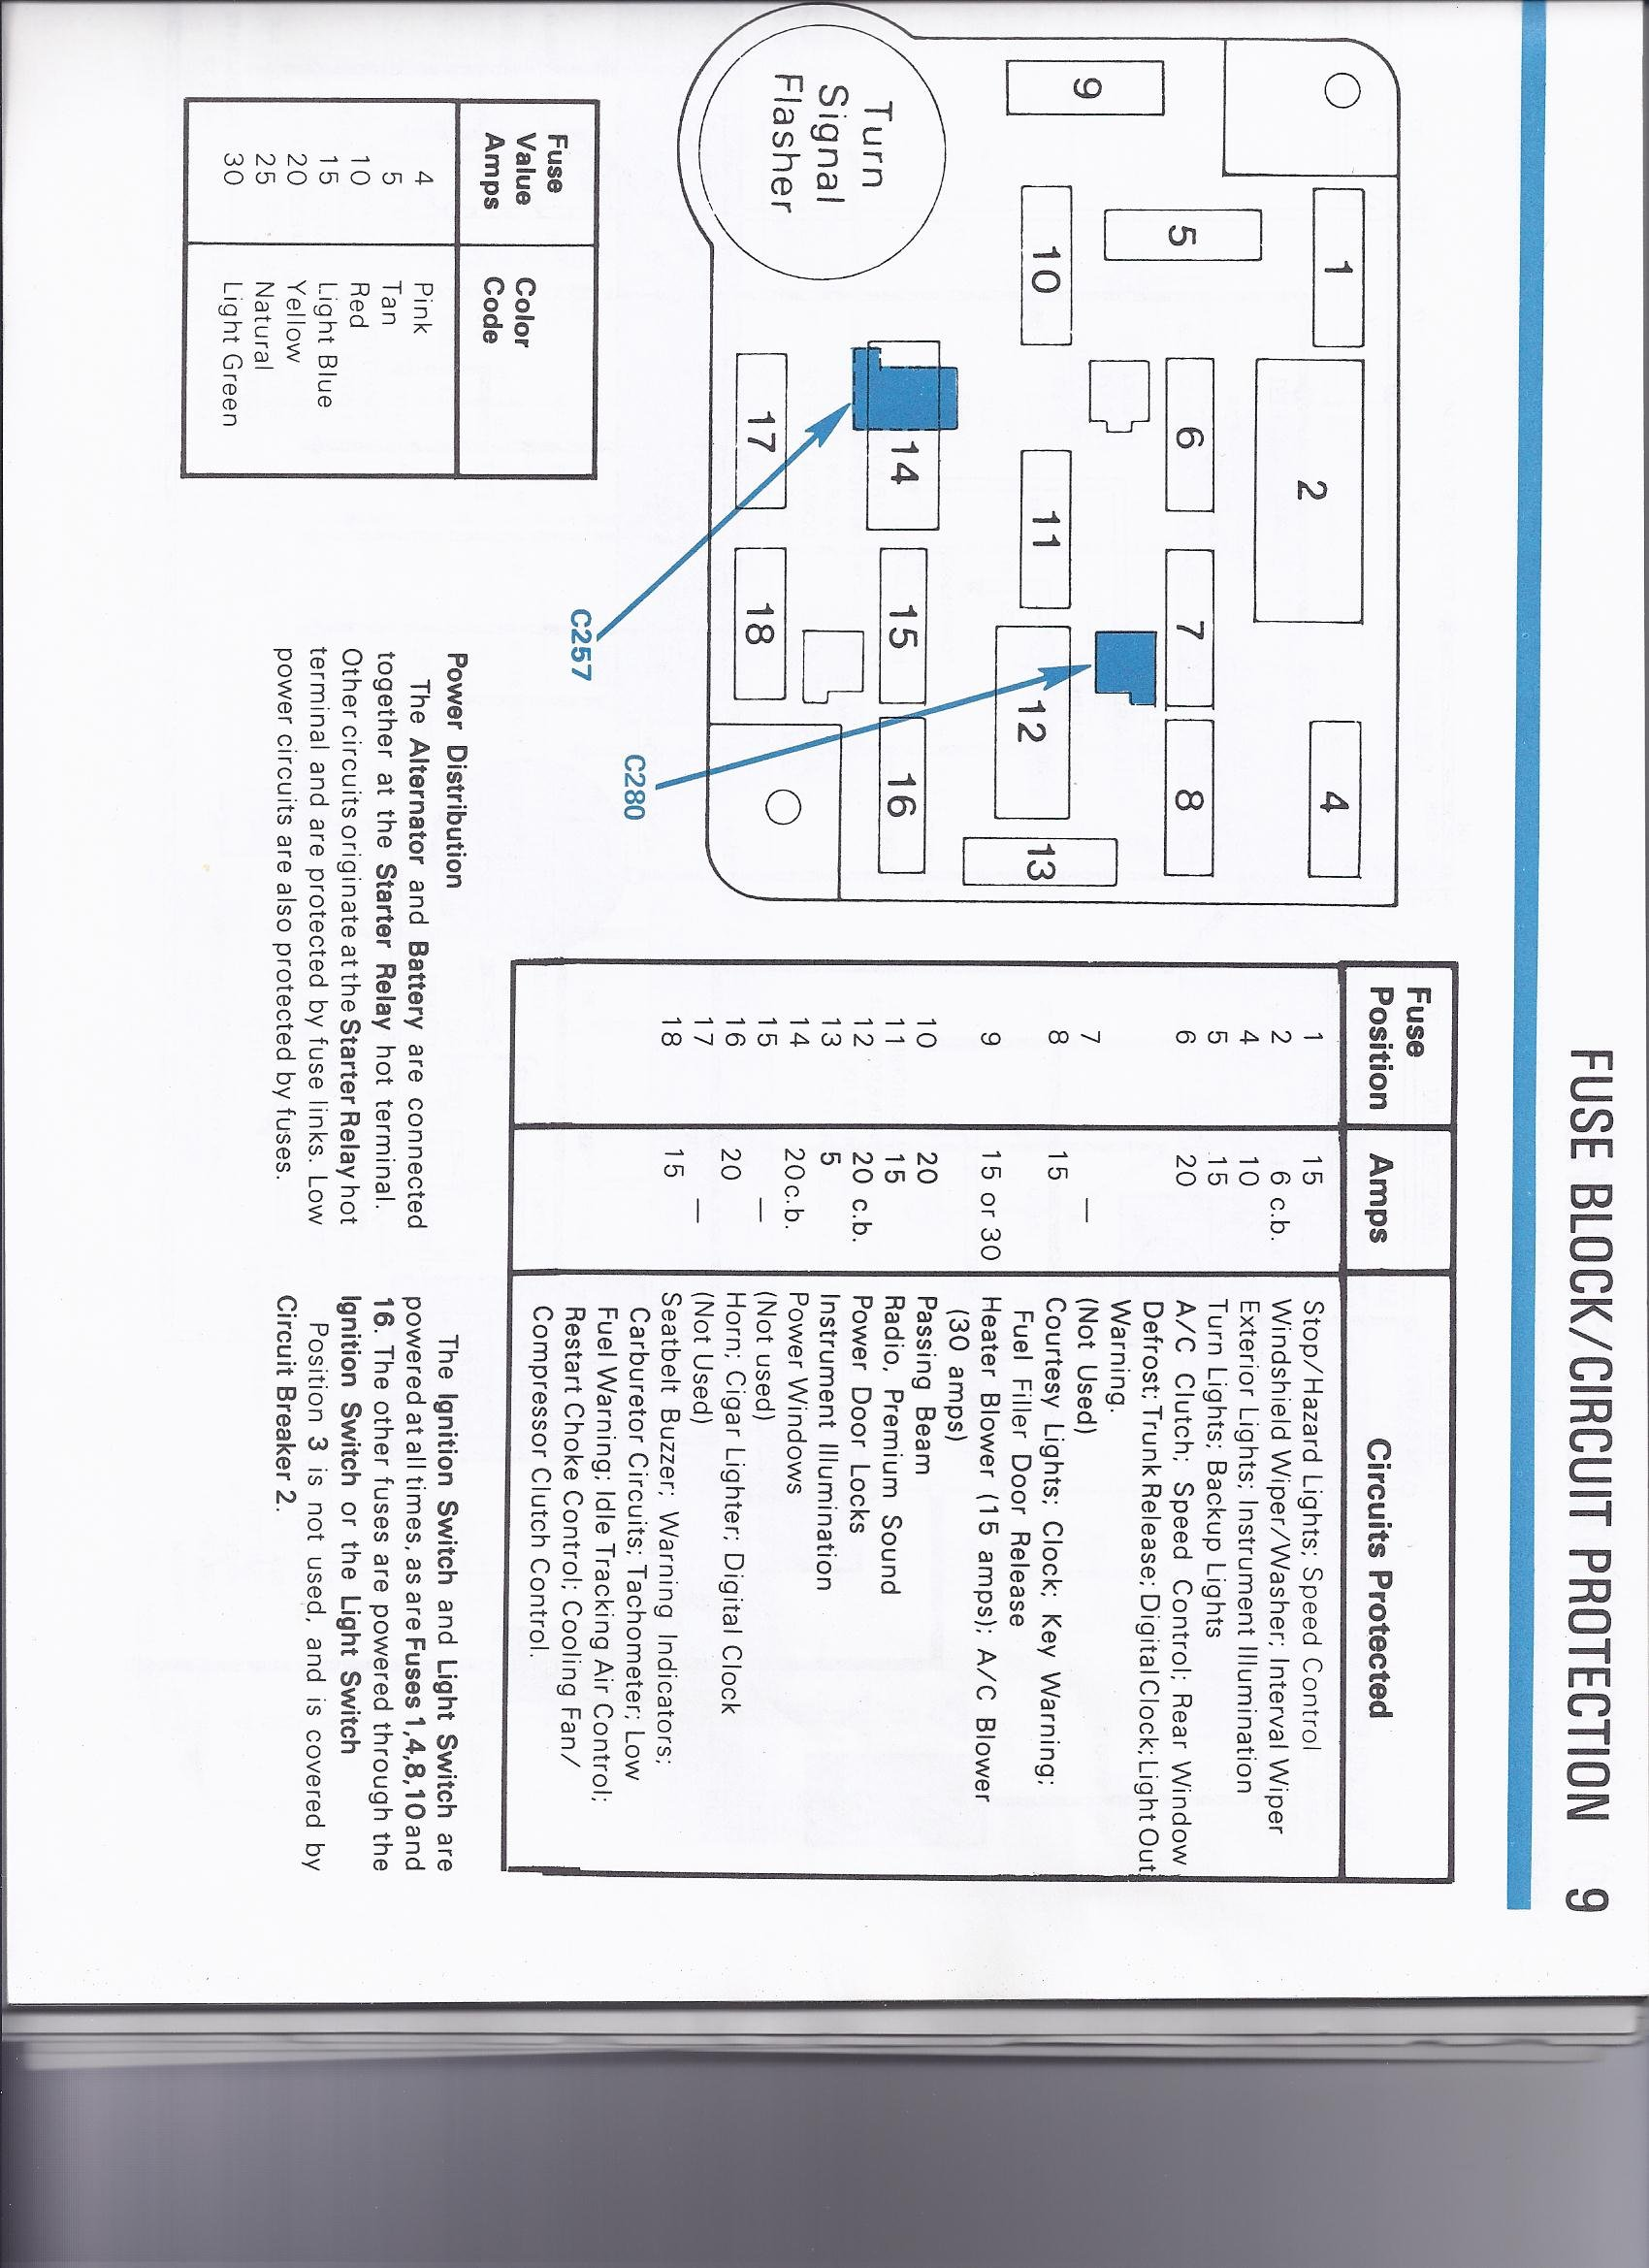 hight resolution of 1986 ford mustang fuse box location wiring diagram centre 1986 ford mustang fuse box